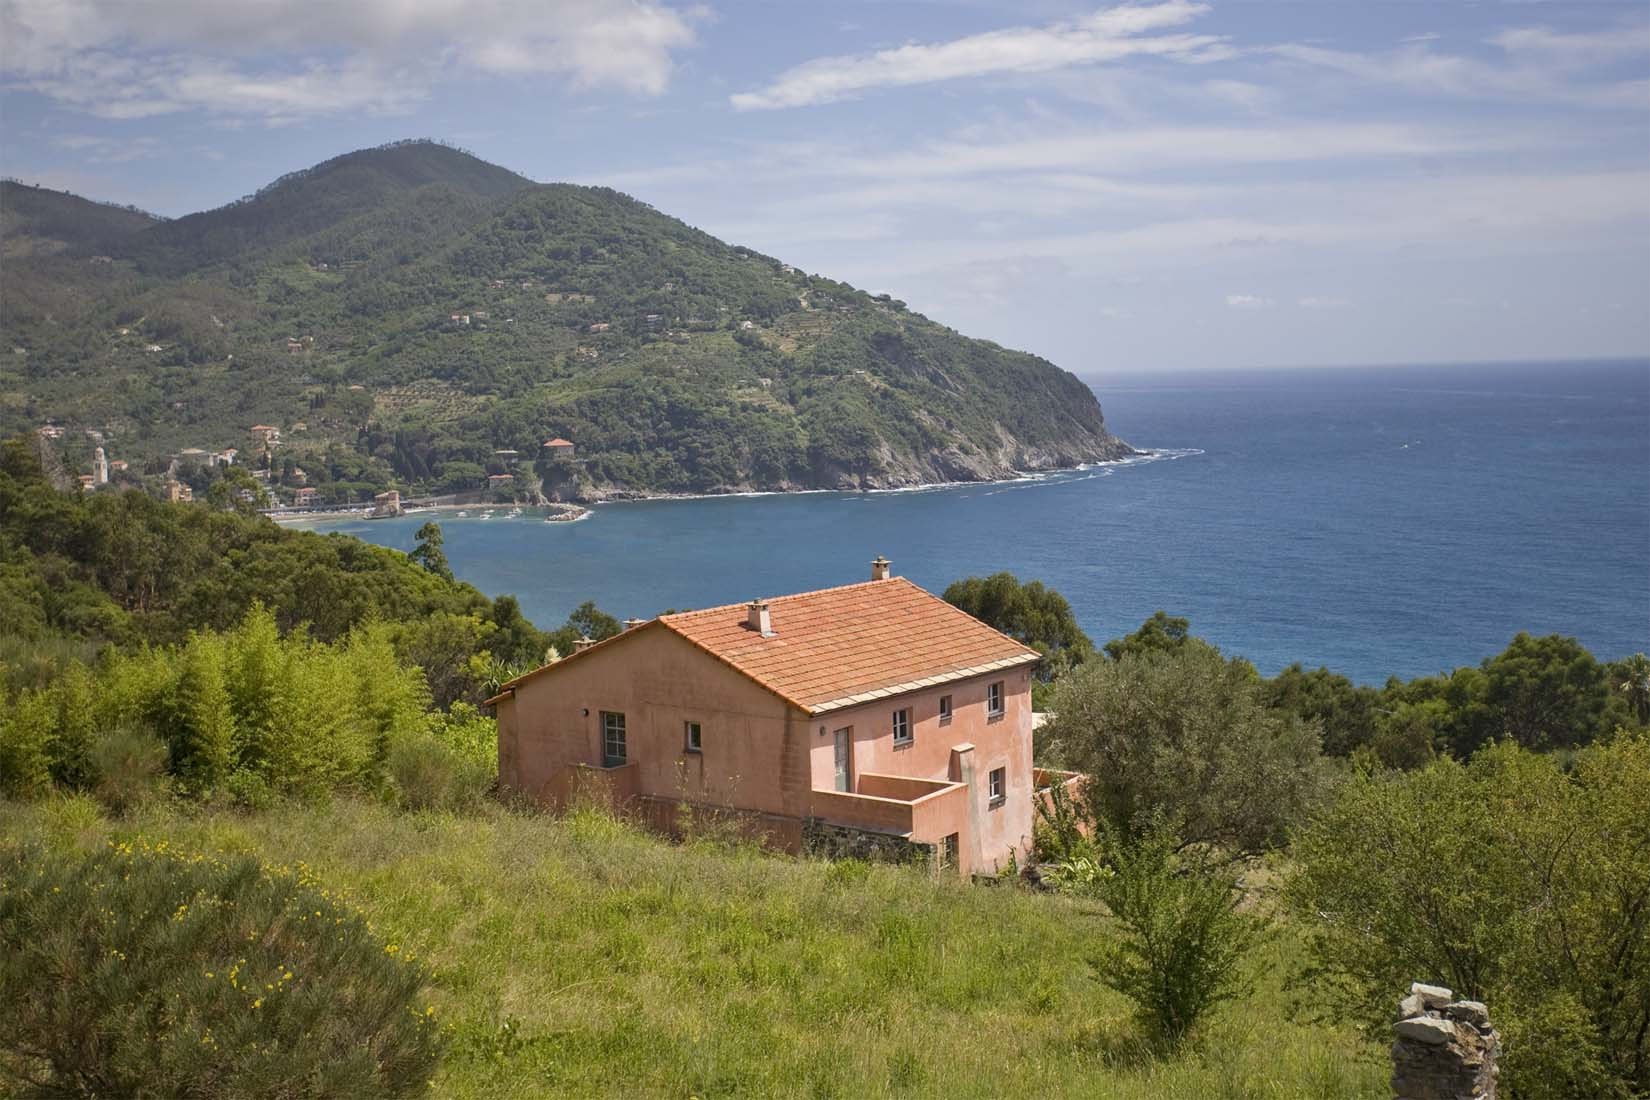 Lagore - Cinque Terre in Northern lake